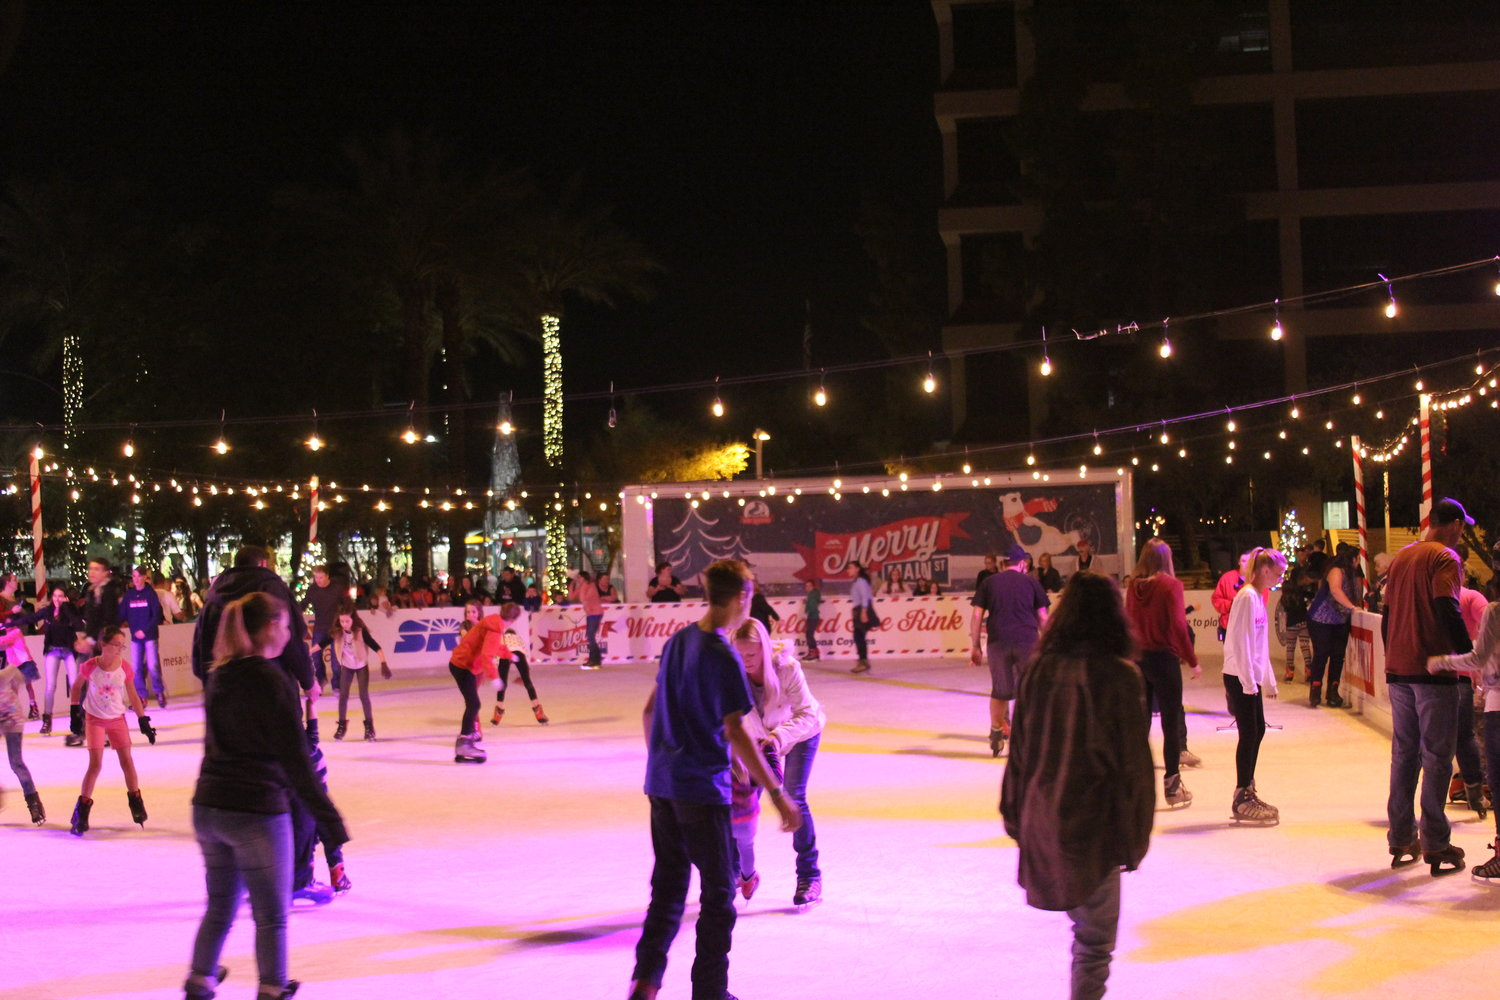 Merry Main Street will again feature the Winter Wonderland Ice Rink with more than 5,000 square feet that will attract skaters taking to the ice under the stars.